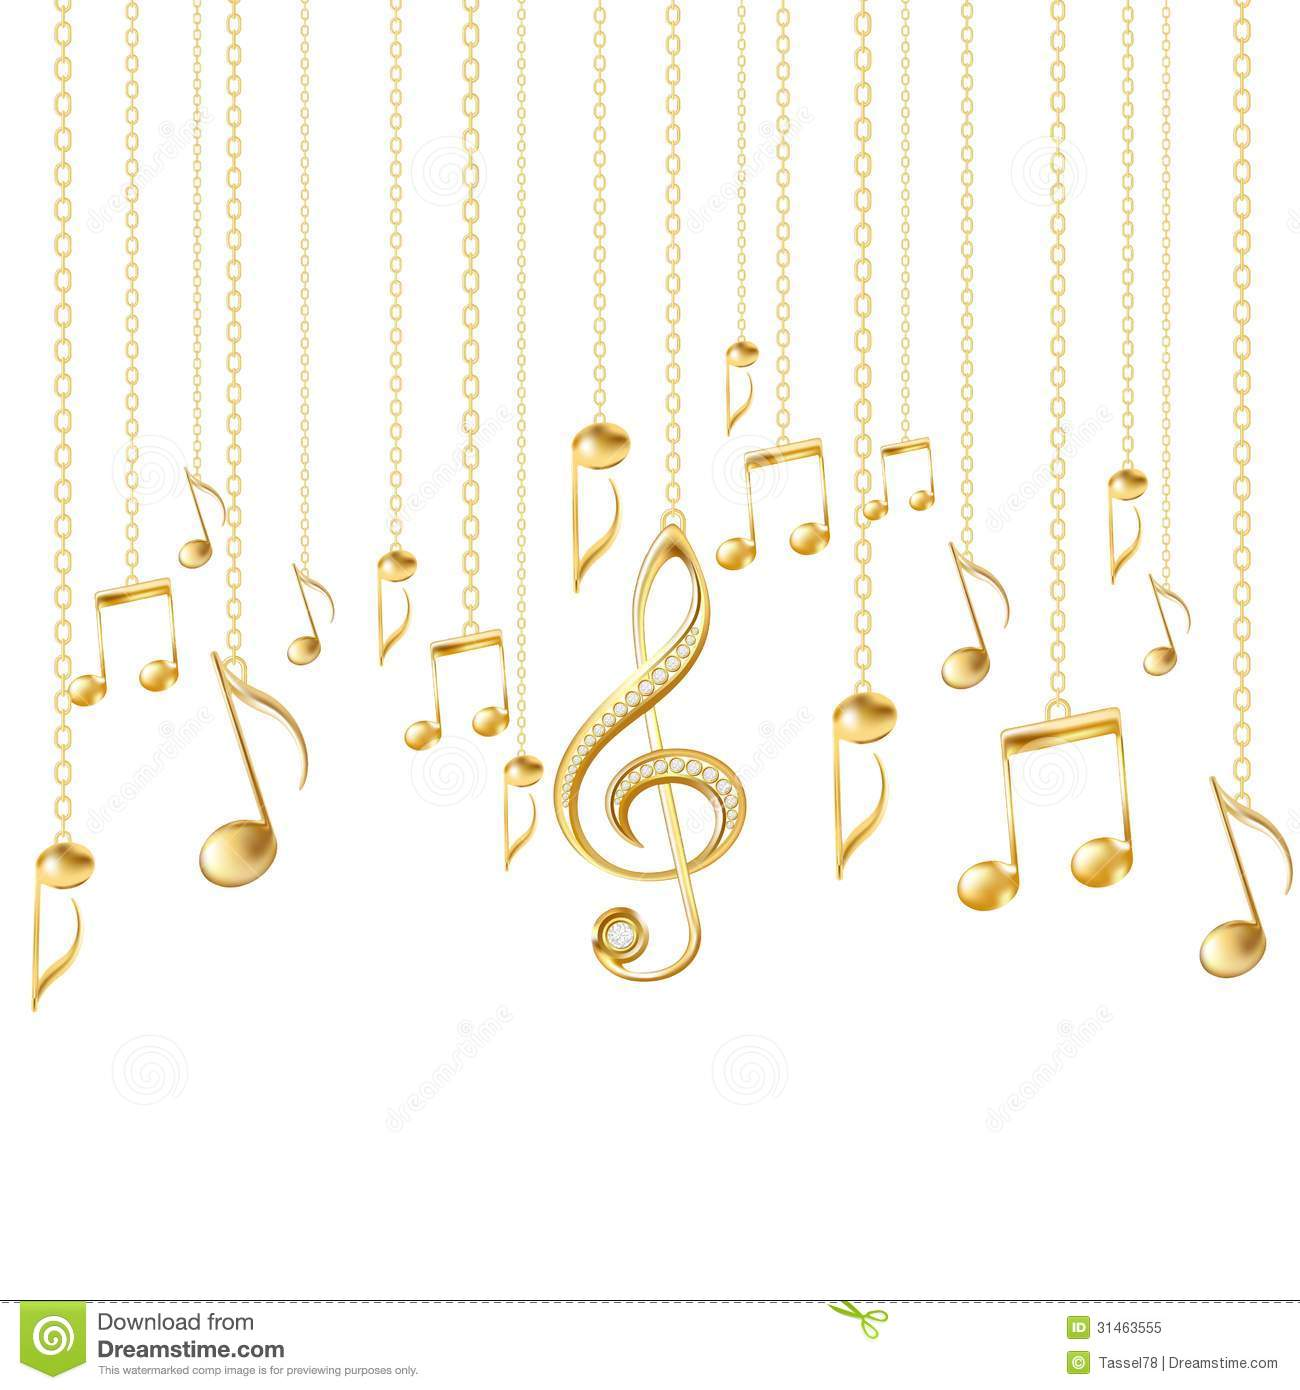 Musical notes staff background on white vector by tassel78 image - Background Clef Golden Illustration Musical